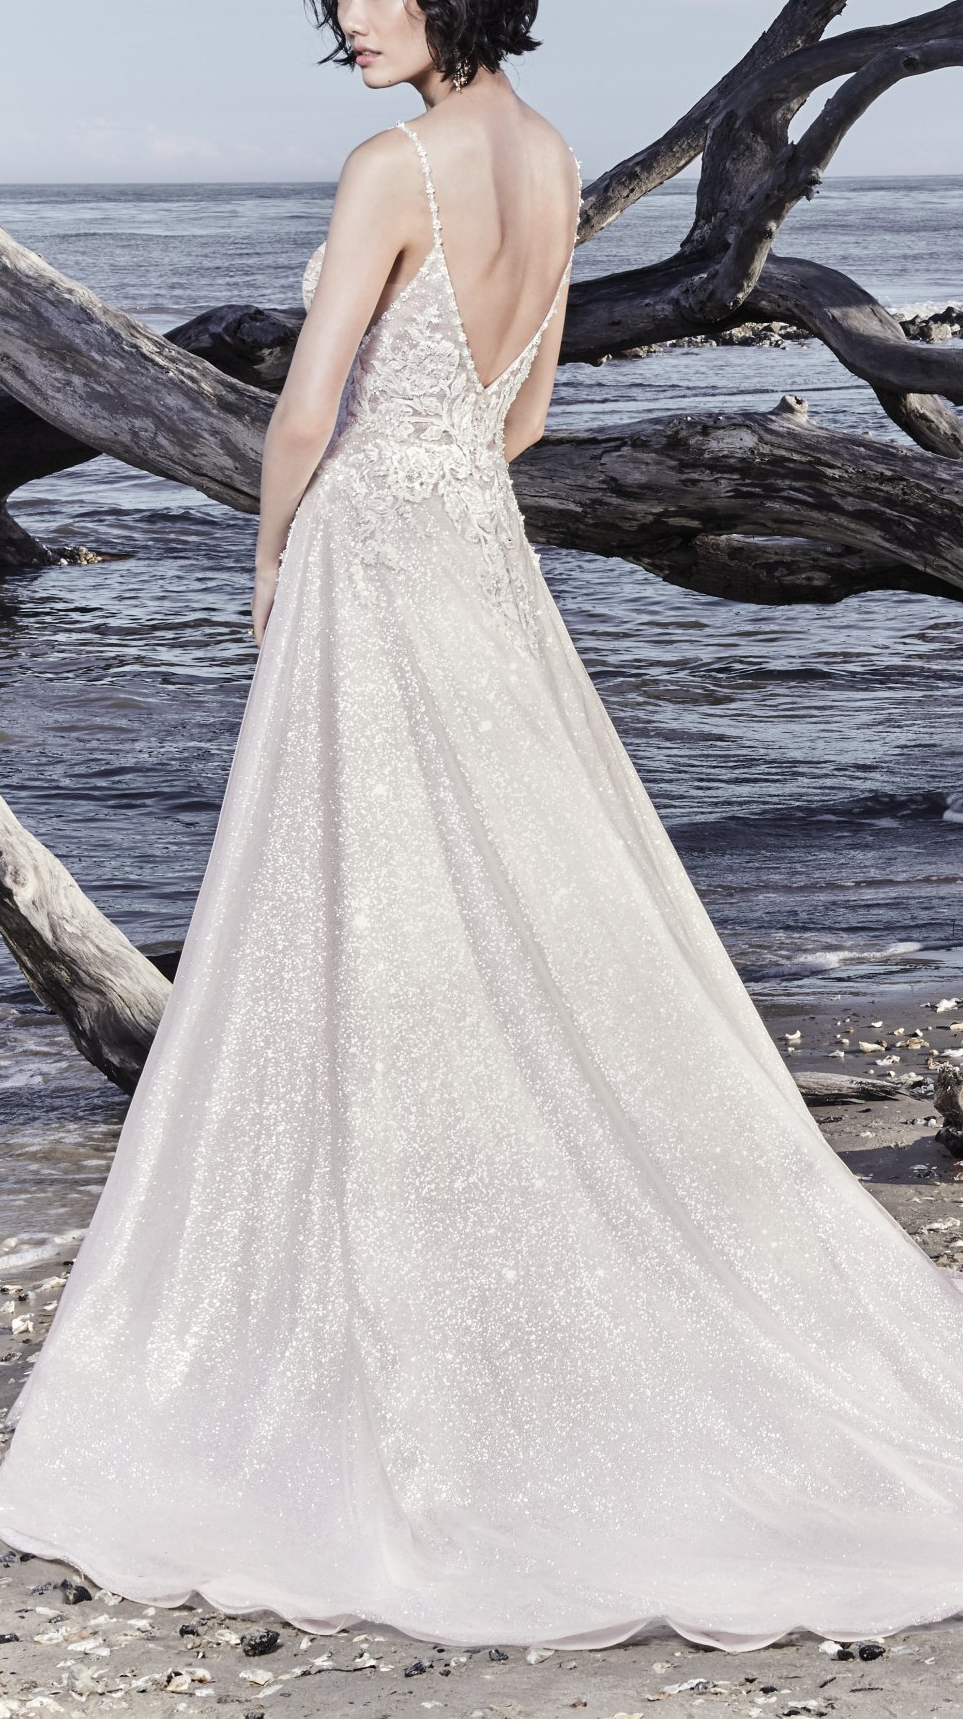 b8b68f884539 Sottero and Midgley - CHAD, This shimmering A-line wedding gown is  comprised of unique sparkle tulle, with beaded lace motifs accenting the  sexy sheer ...